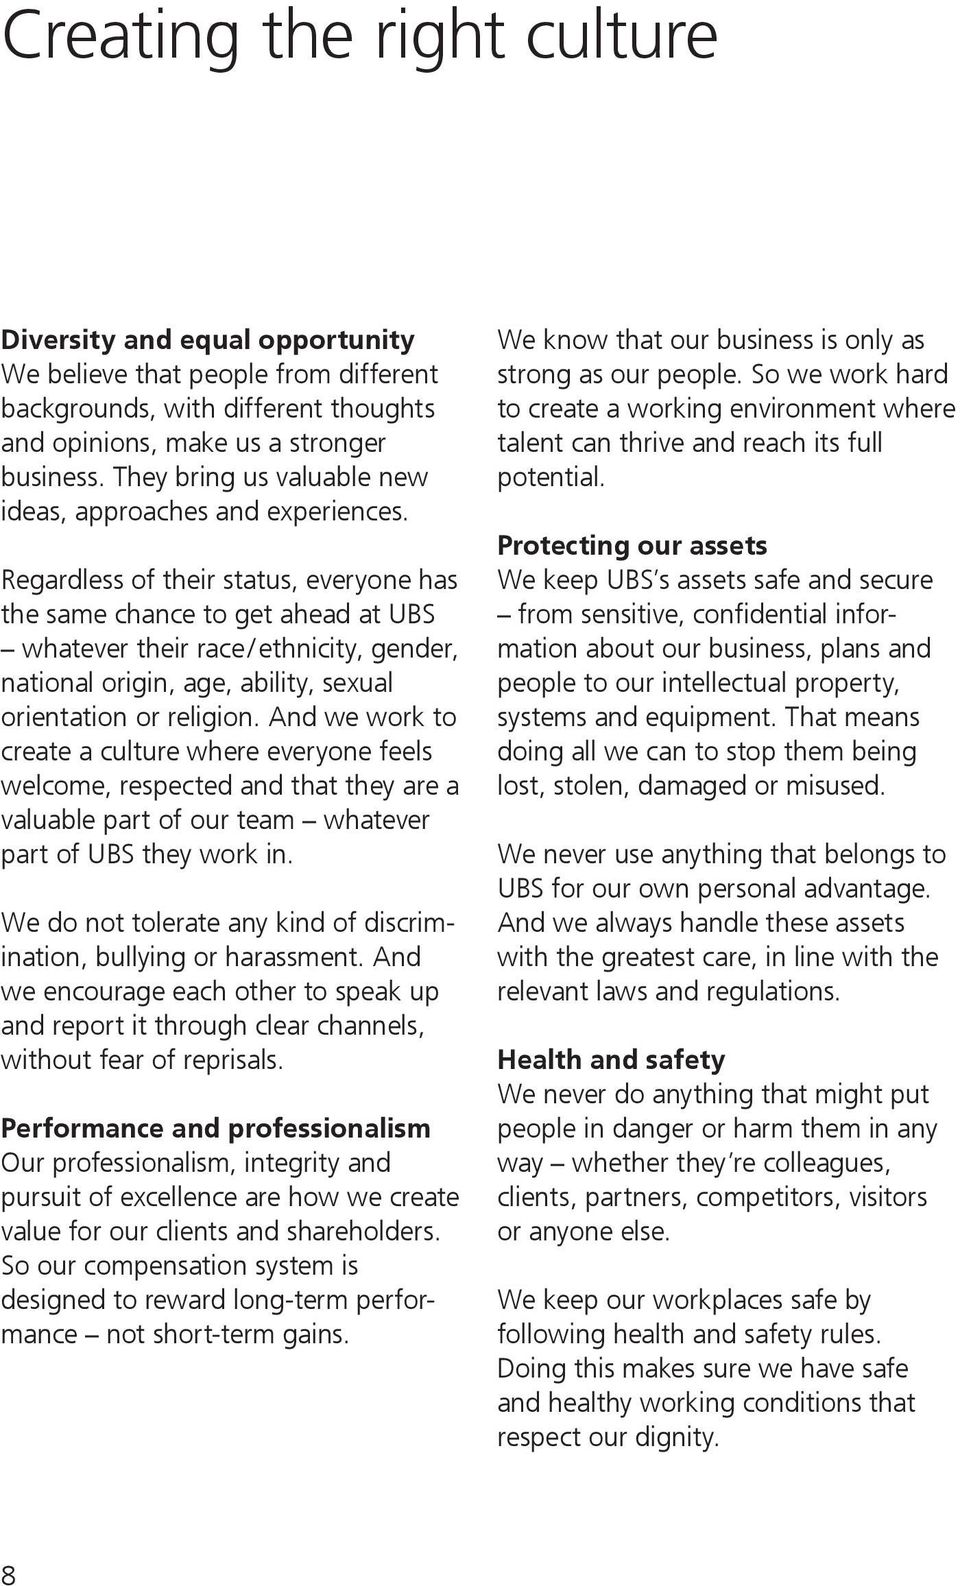 Regardless of their status, everyone has the same chance to get ahead at UBS whatever their race / ethnicity, gender, national origin, age, ability, sexual orientation or religion.